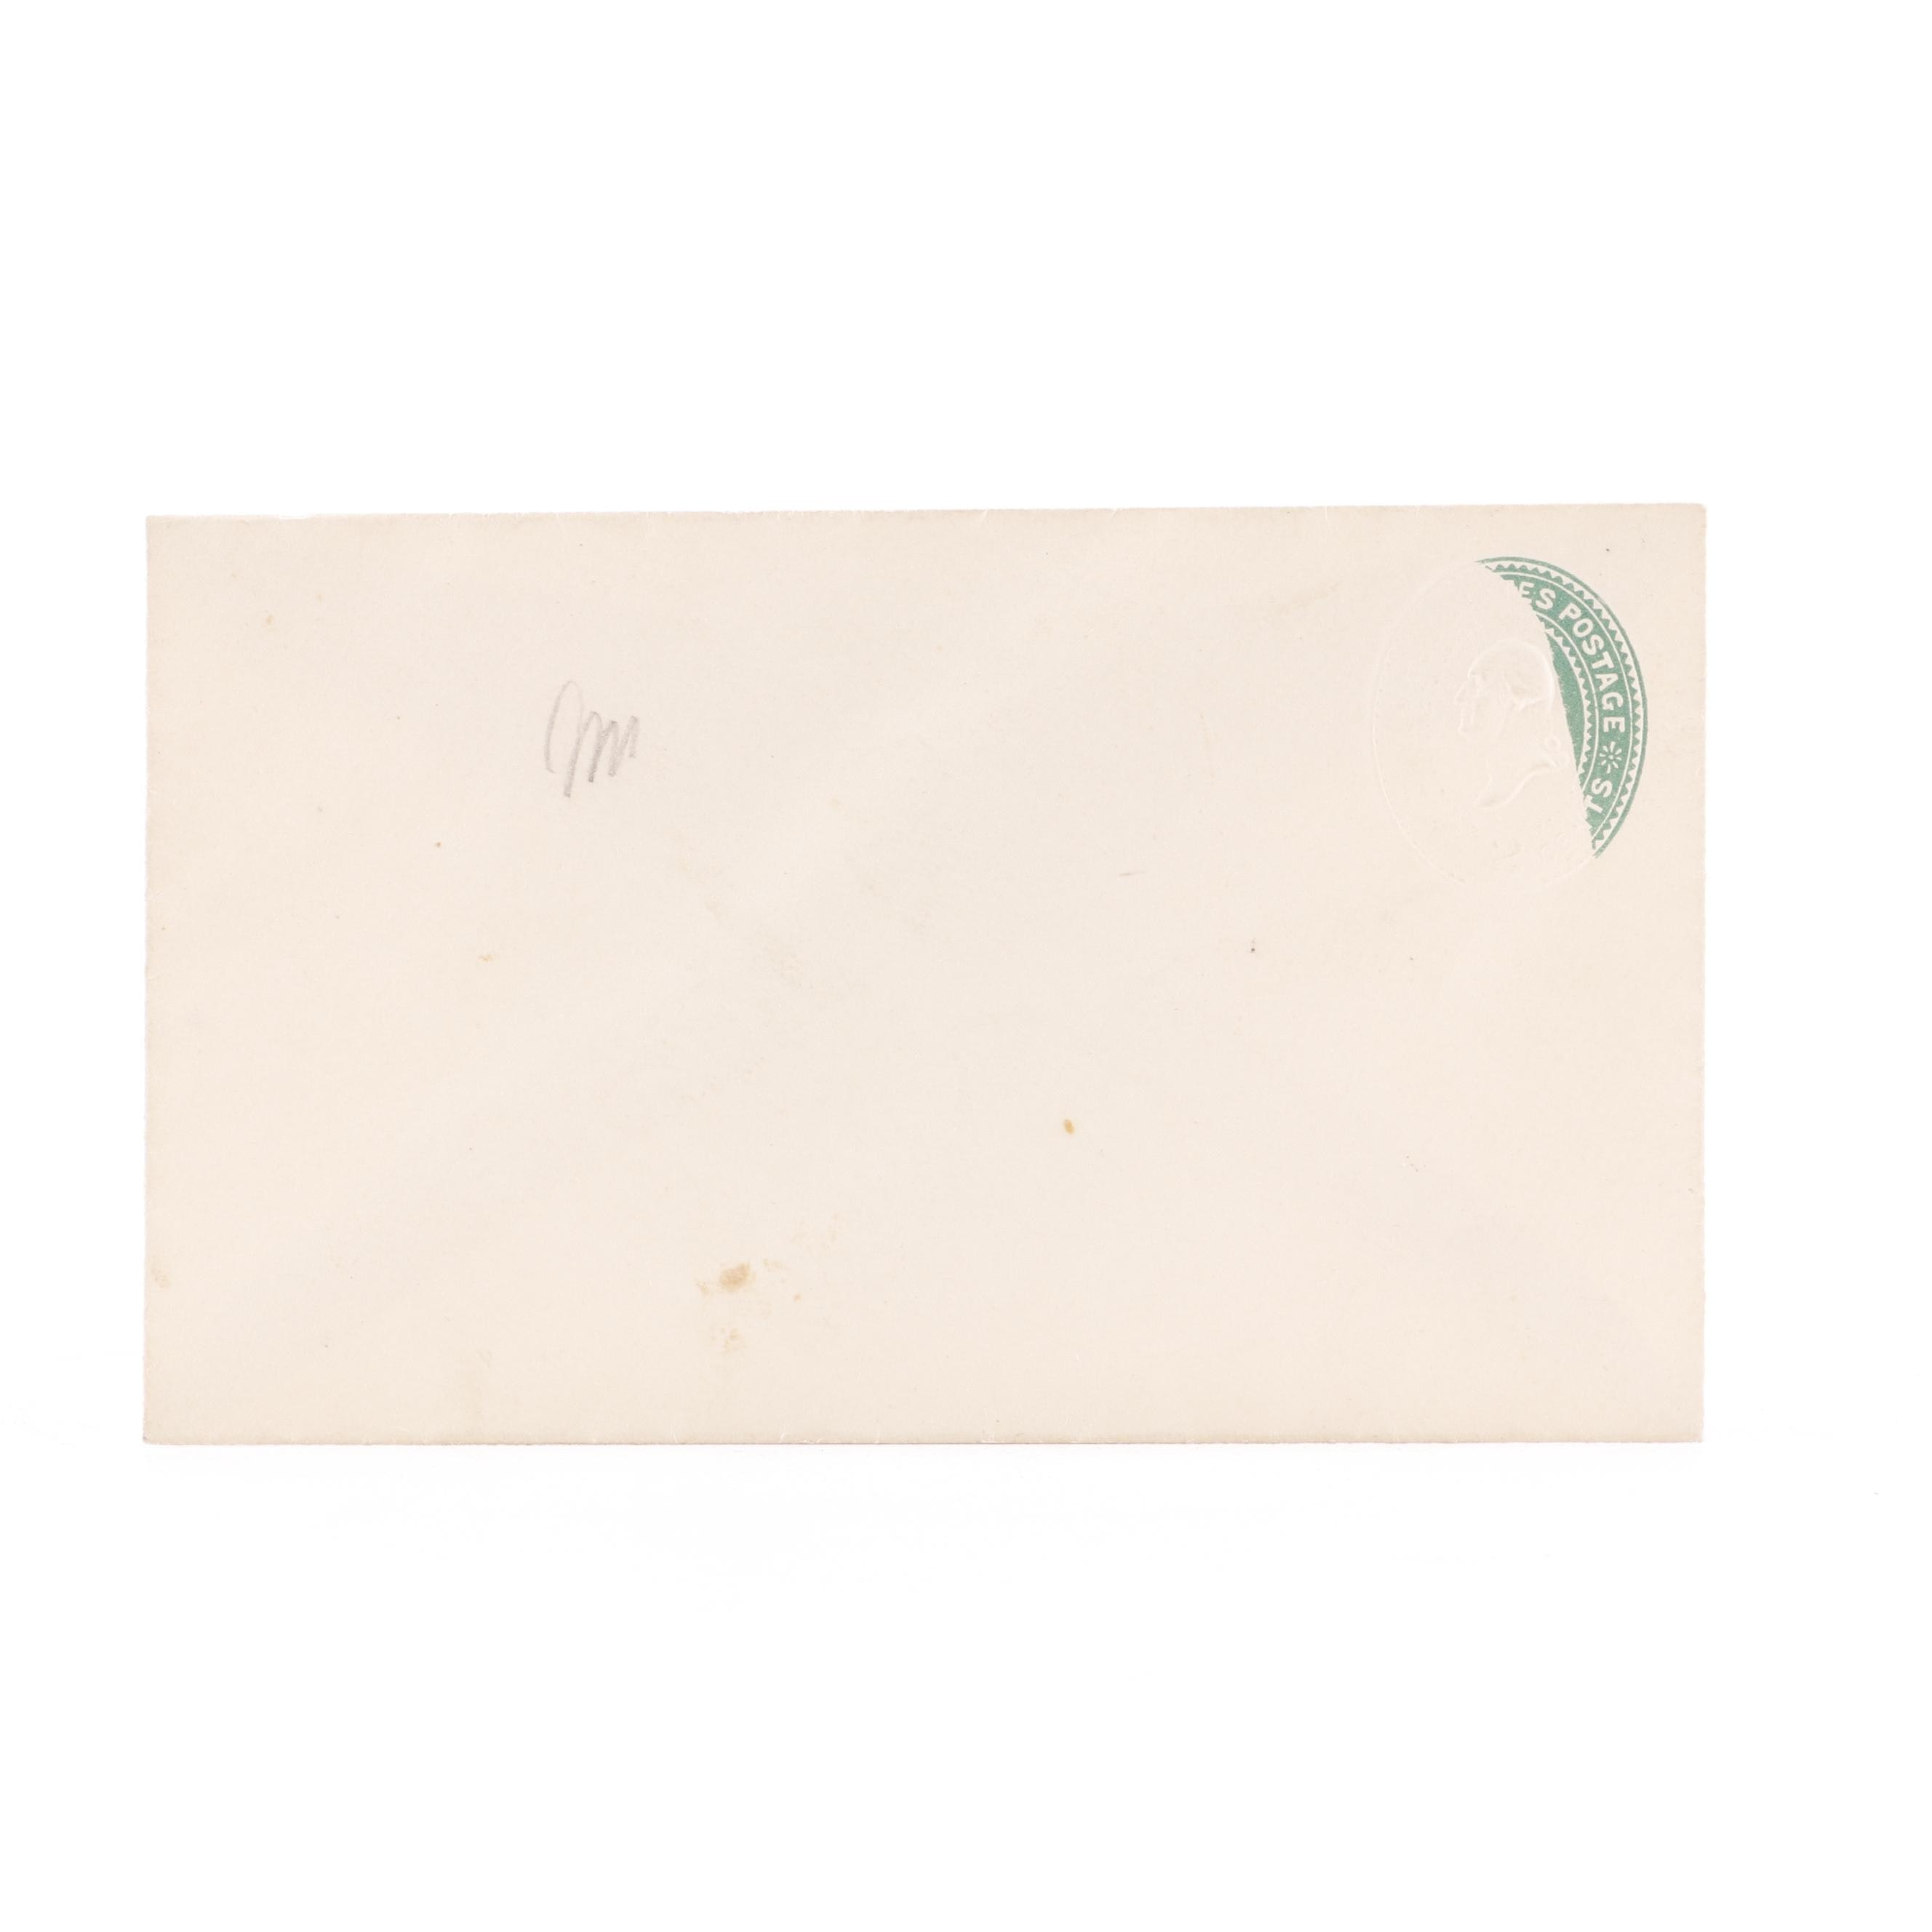 Antique Envelope with Postal Stamp Error